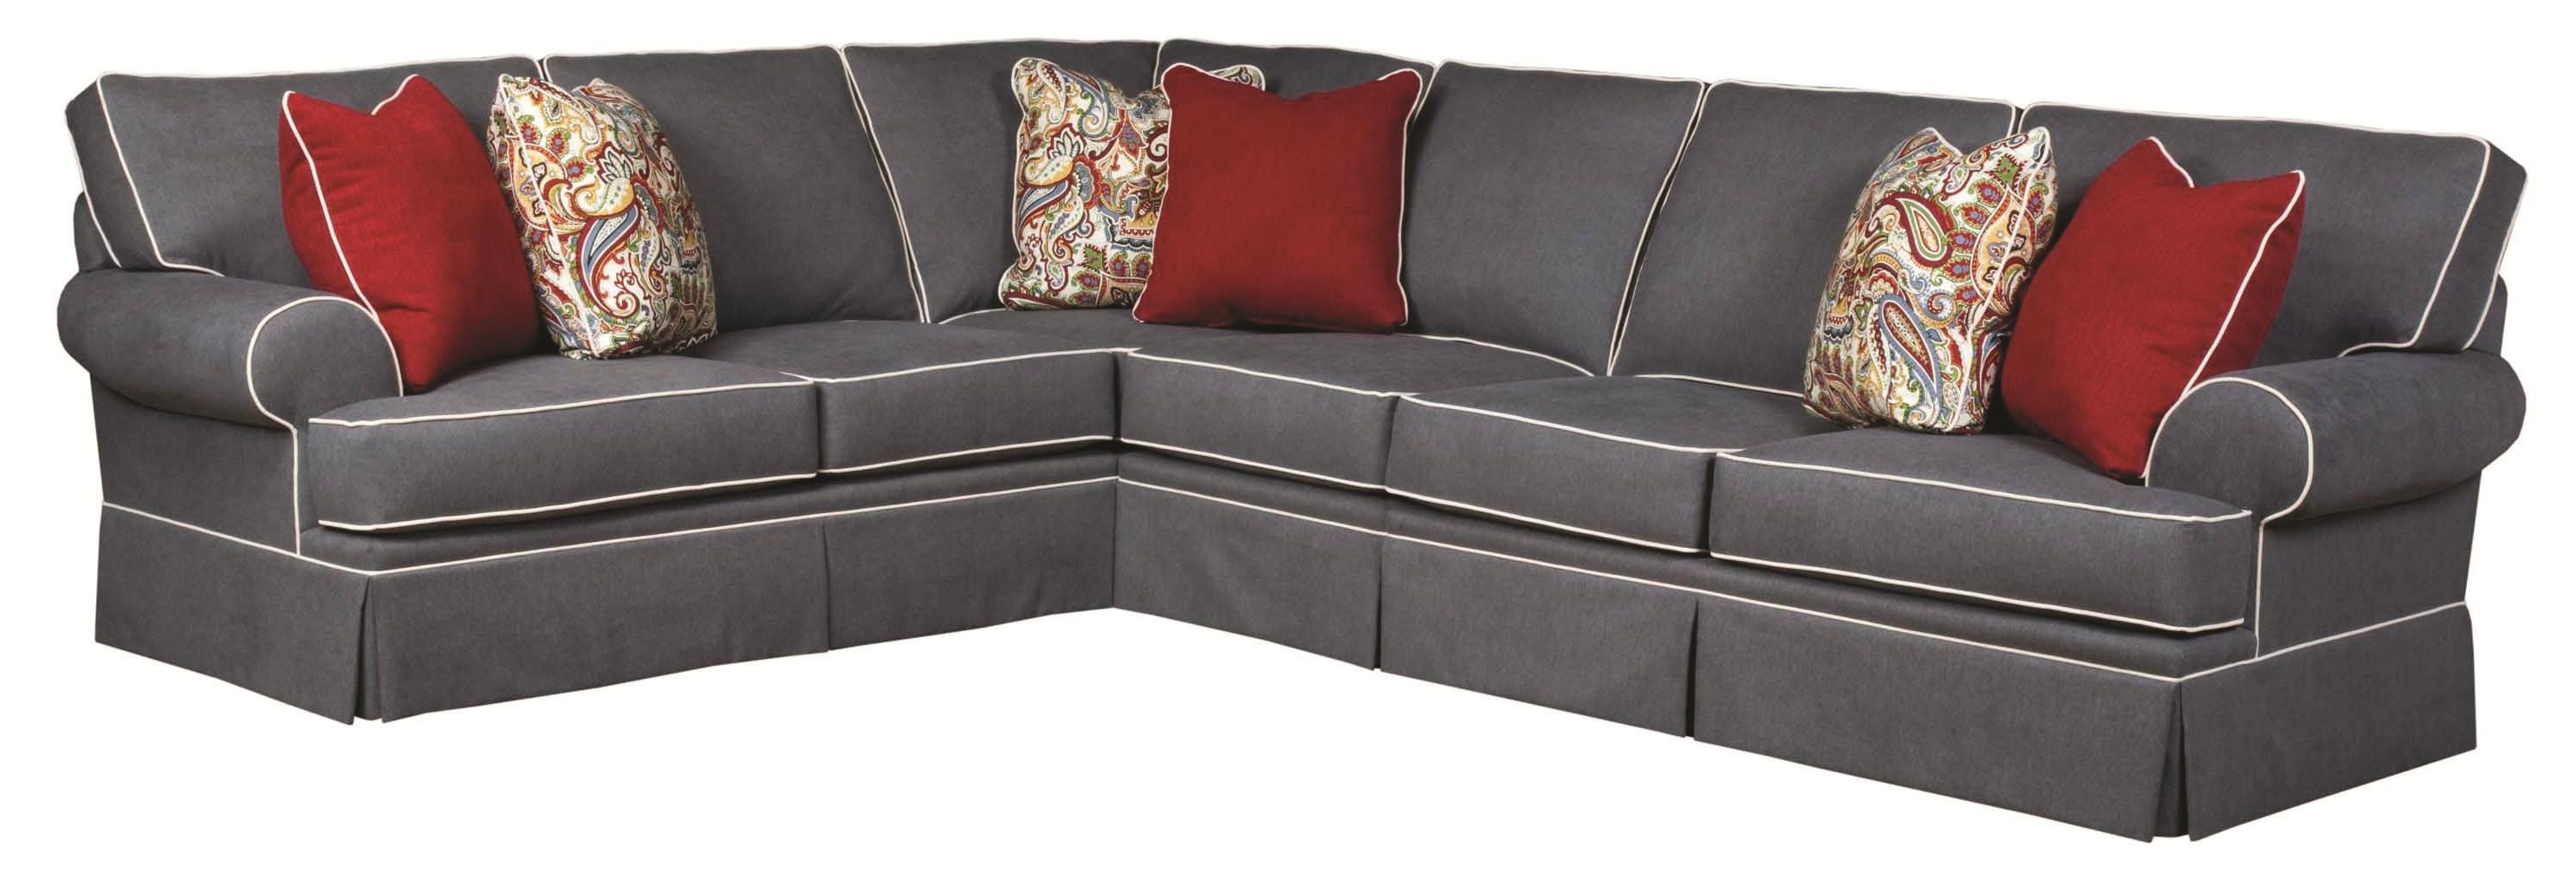 Sam Levitz Sectional Sofas Within Current Broyhill Furniture Emily Traditional 3 Piece Sectional Sofa With (View 7 of 20)